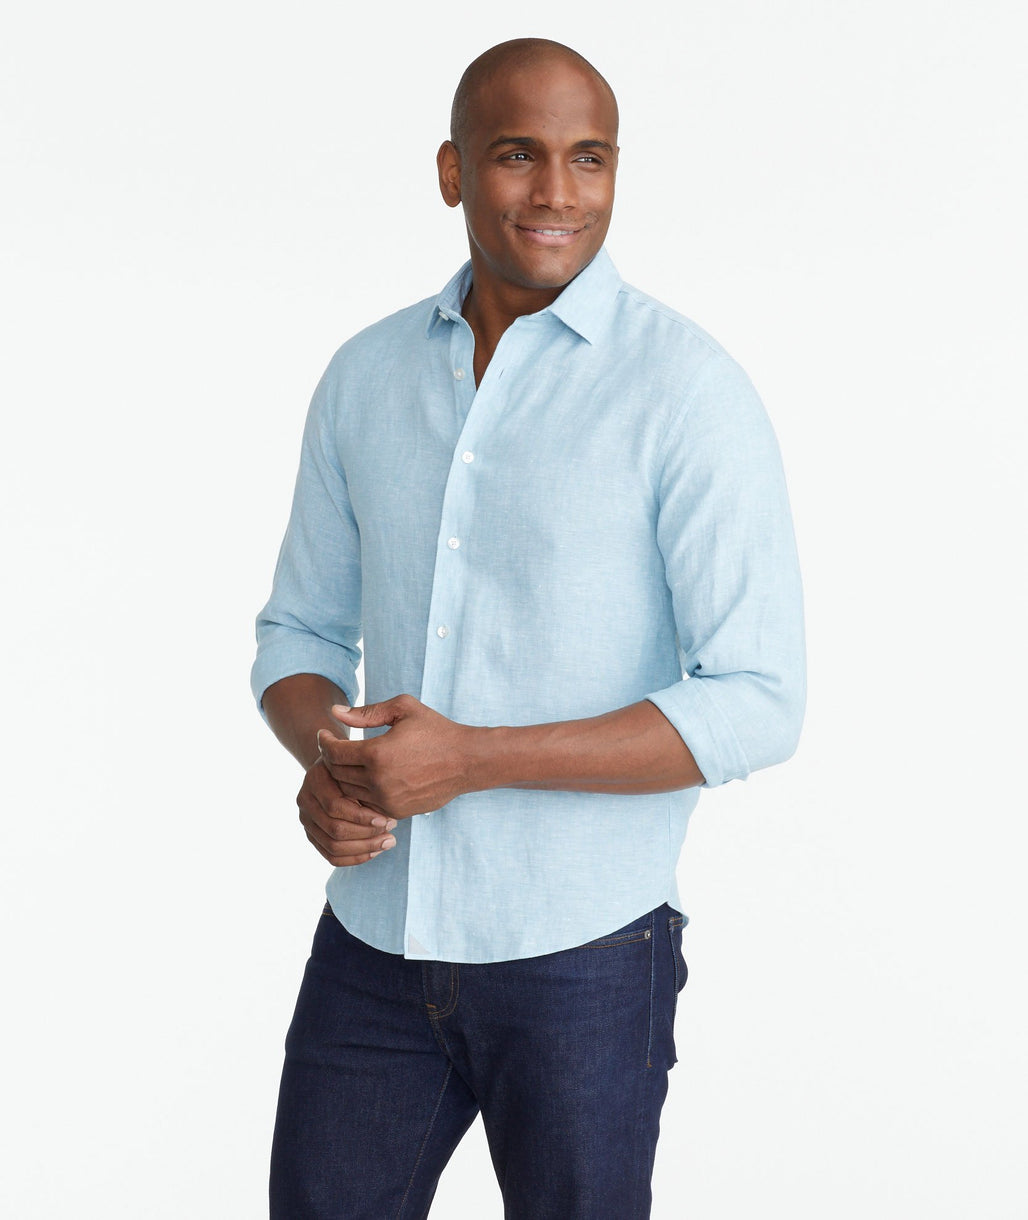 Model wearing a Bright Blue Wrinkle-Resistant Linen Franconia Shirt